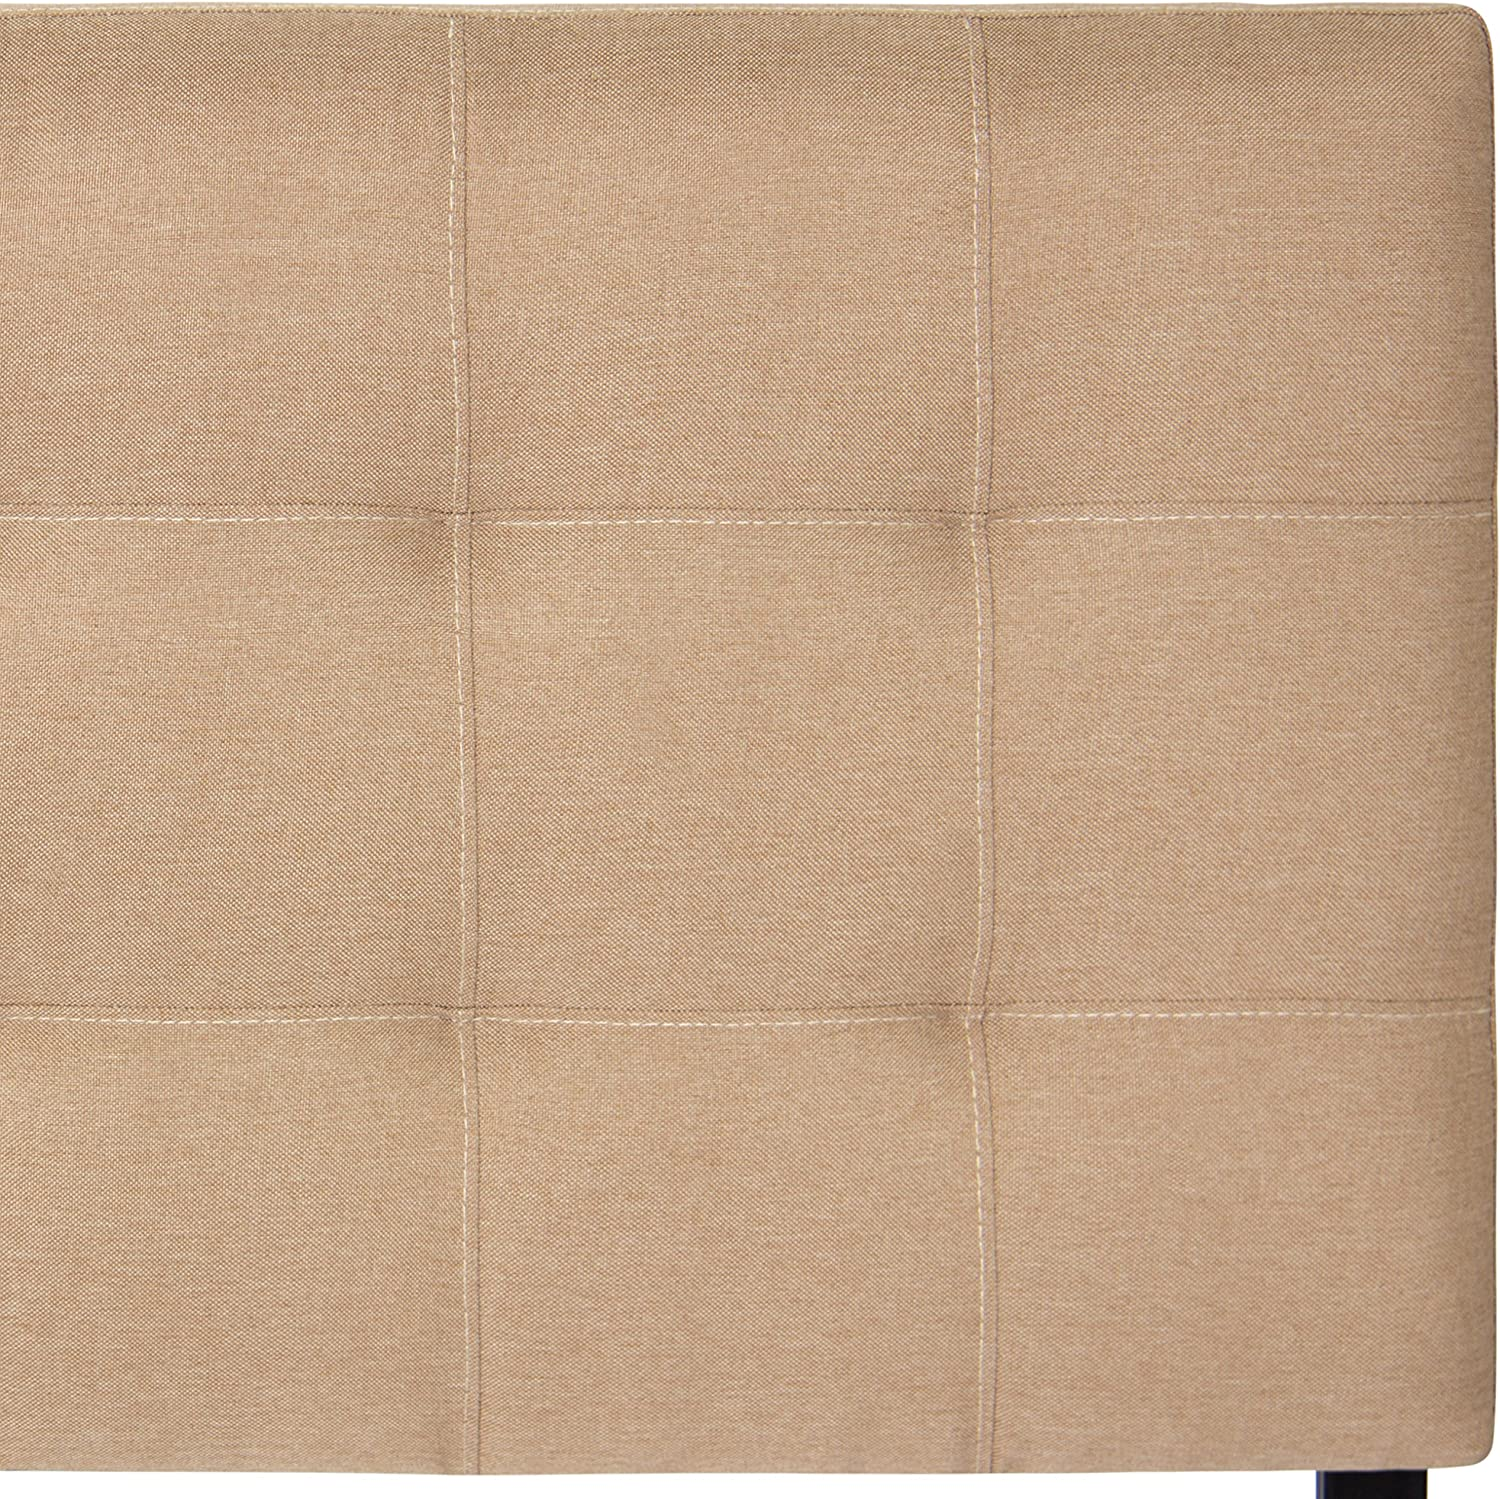 Best Choice Products Upholstered Tufted Fabric Queen Headboard – Beige